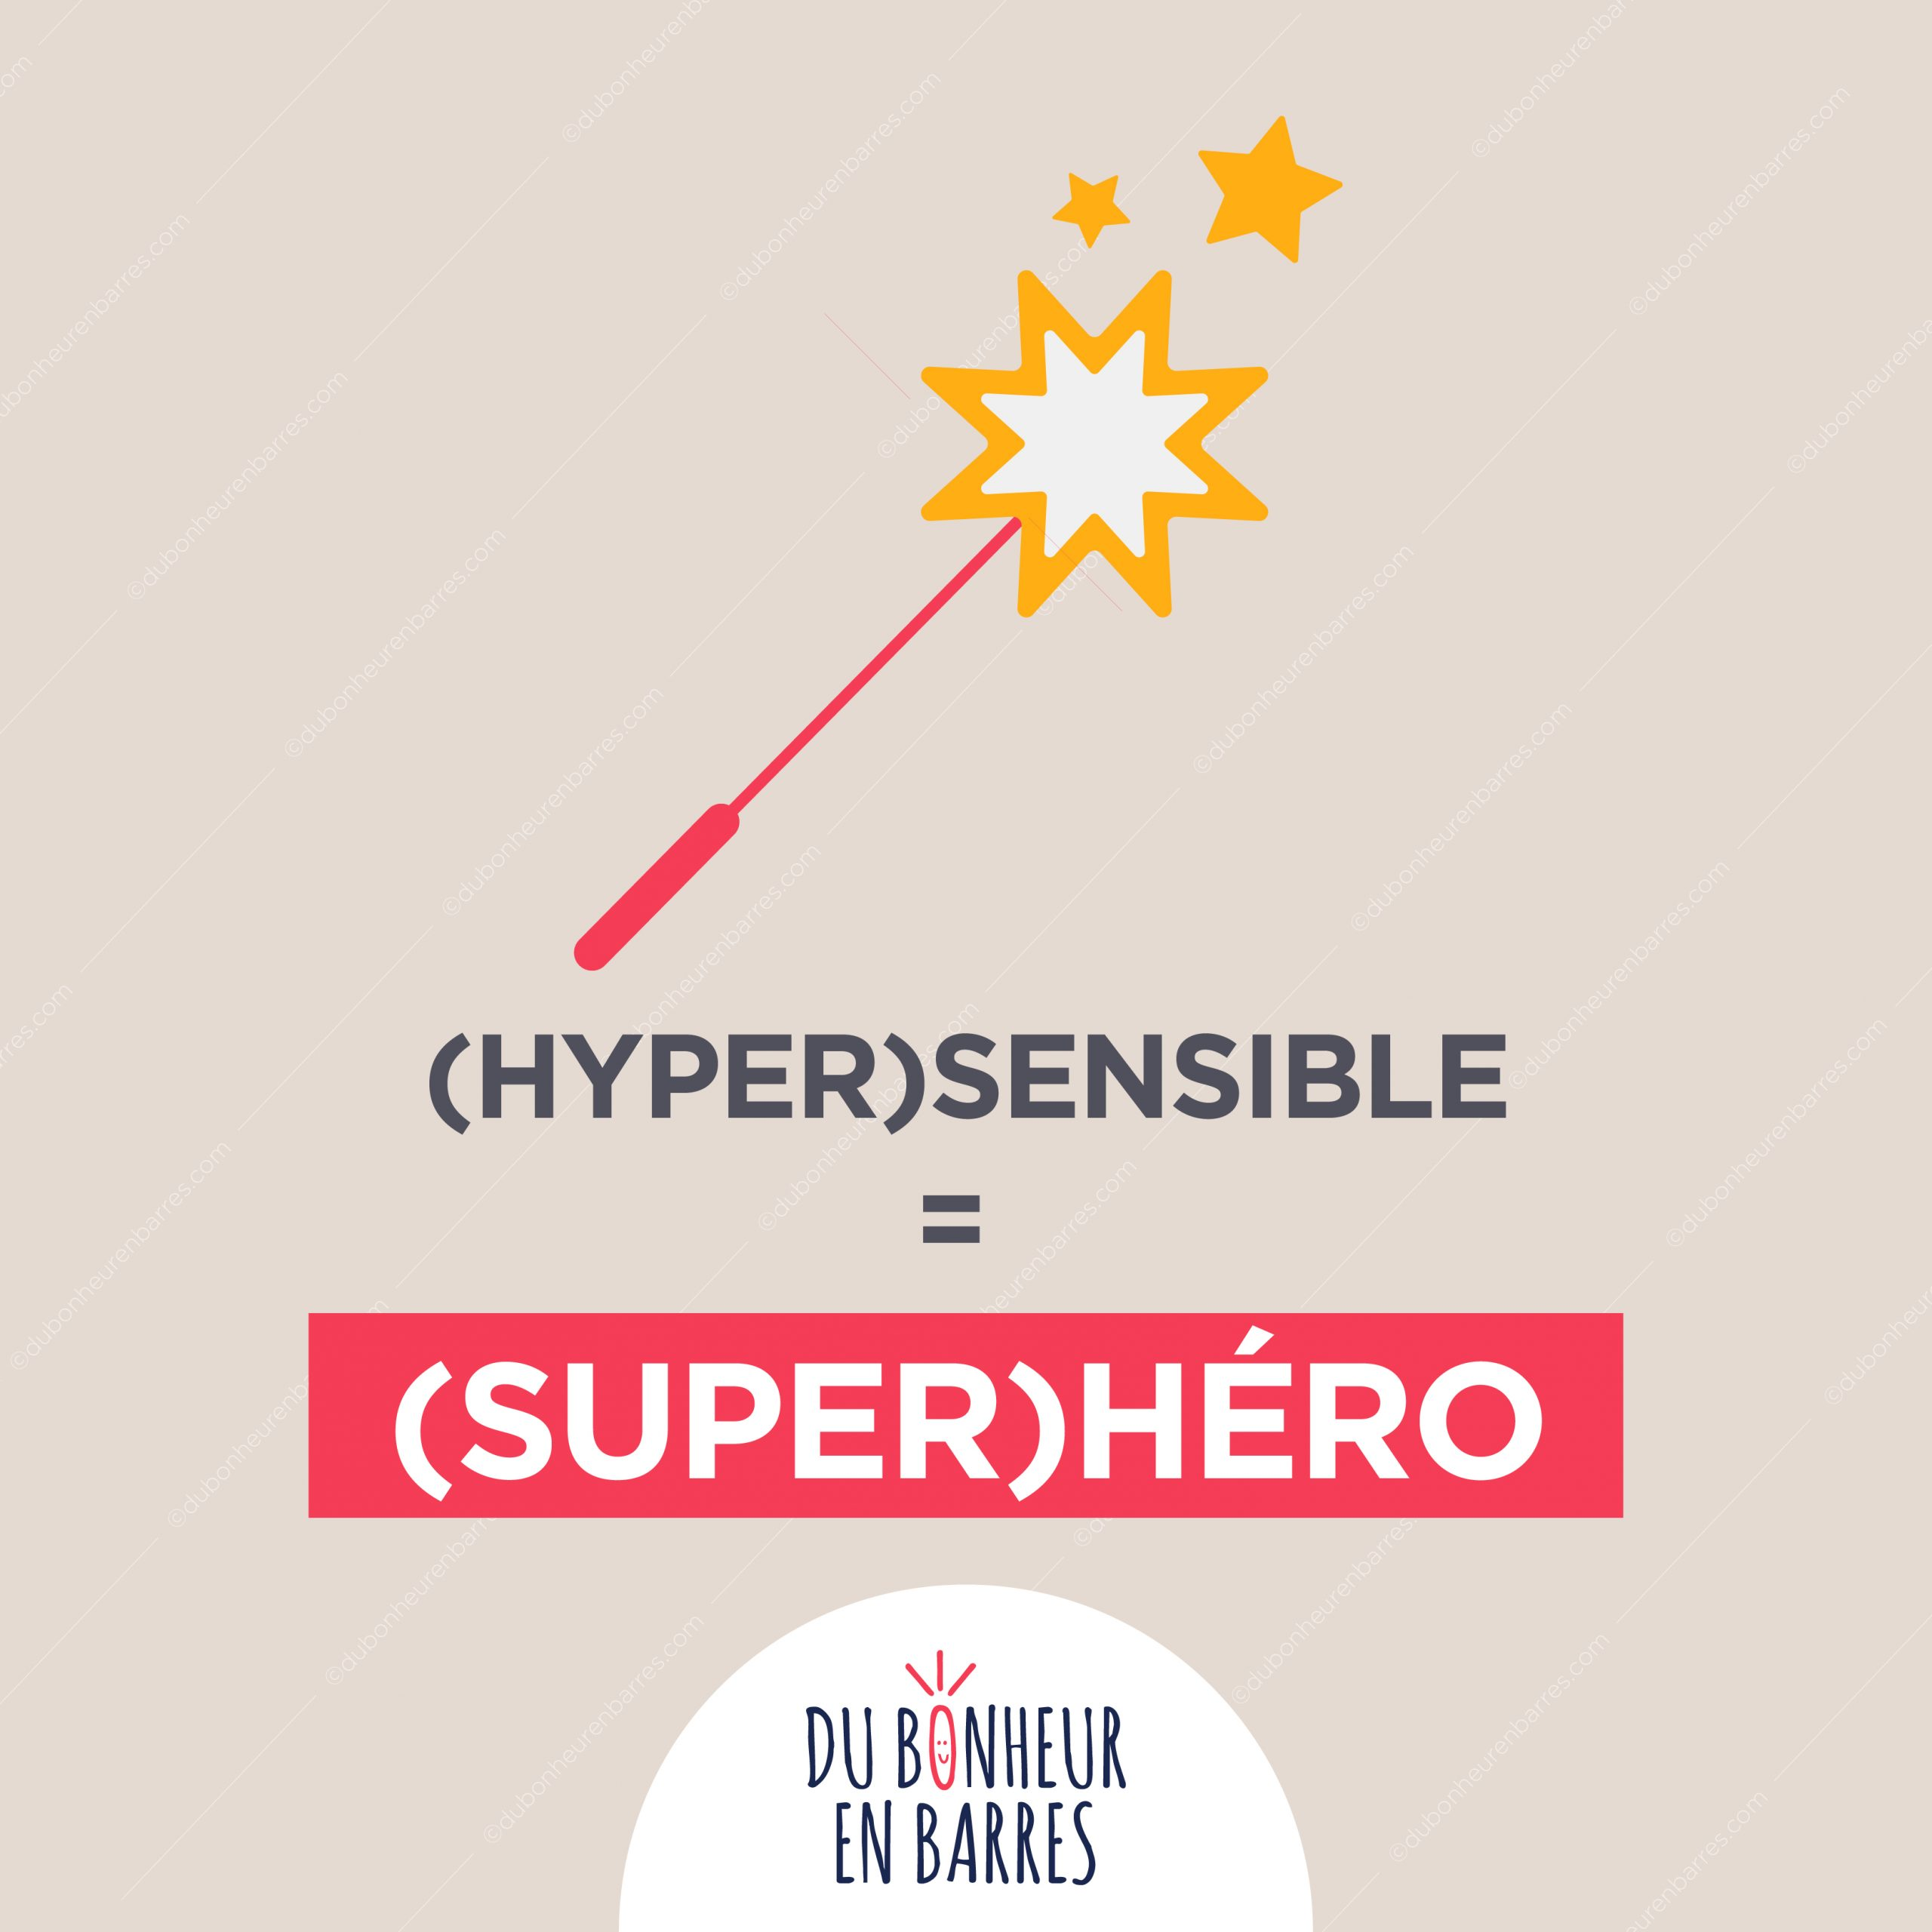 Hypersensible = super-héros